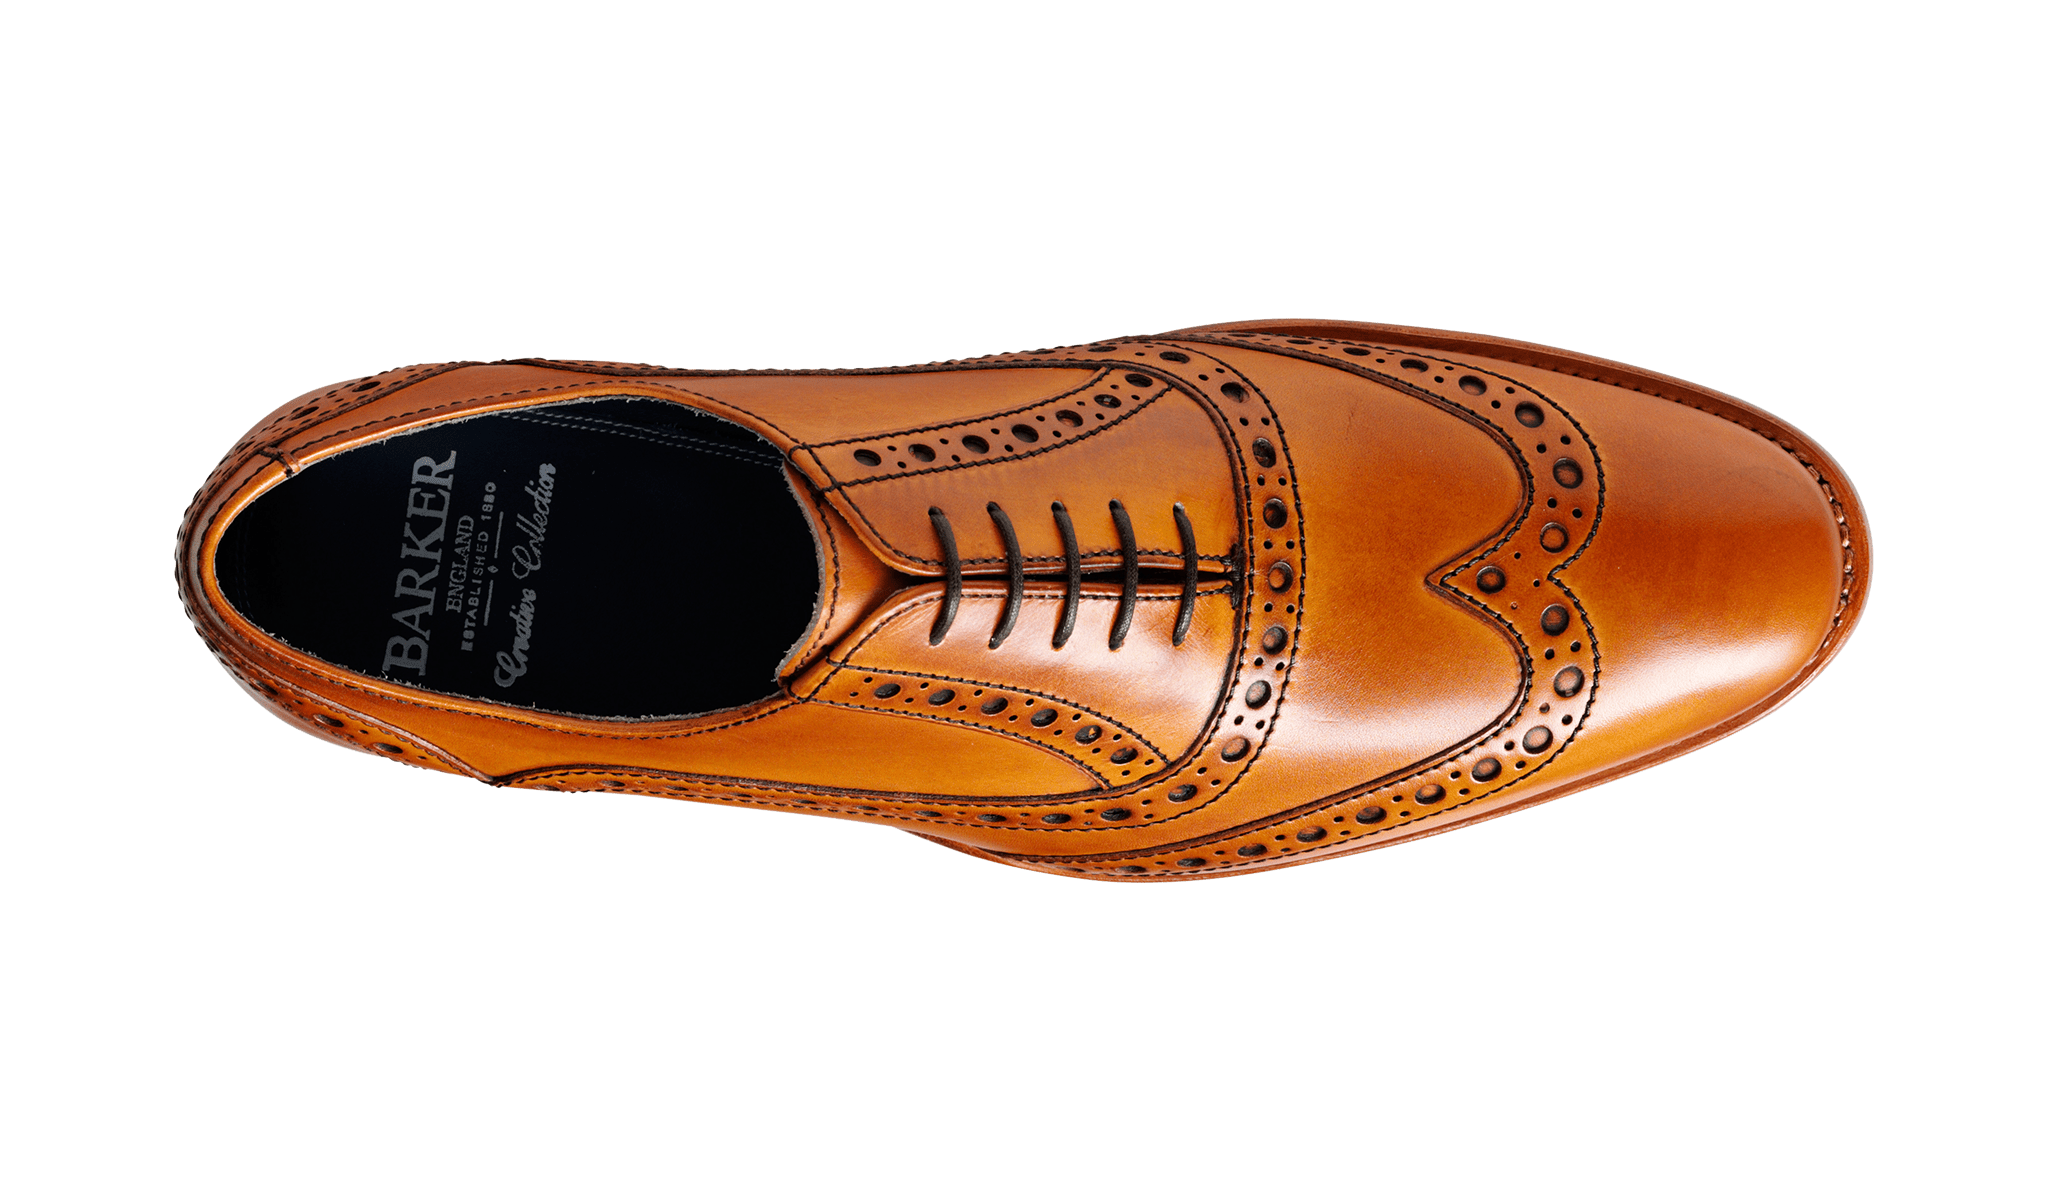 Barker Men's Grant Leather Brogue Shoes 3372/26 - British Shoe Company